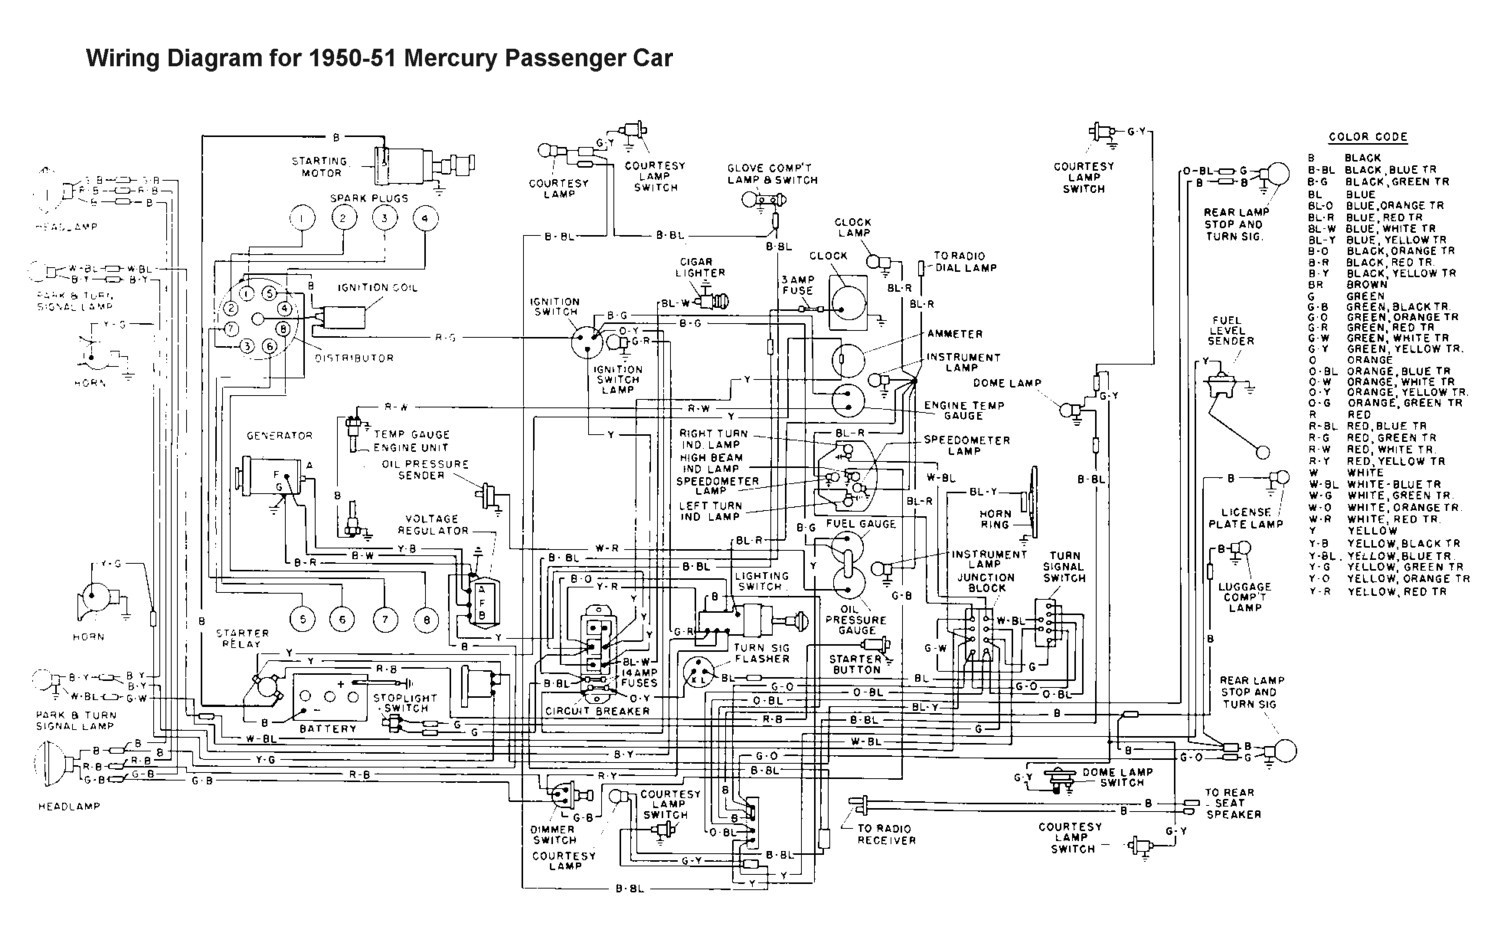 Flathead Electrical Wiring Diagrams 1936 Volkswagen Beetle Engine Diagram For 1950 51 Mercury Car